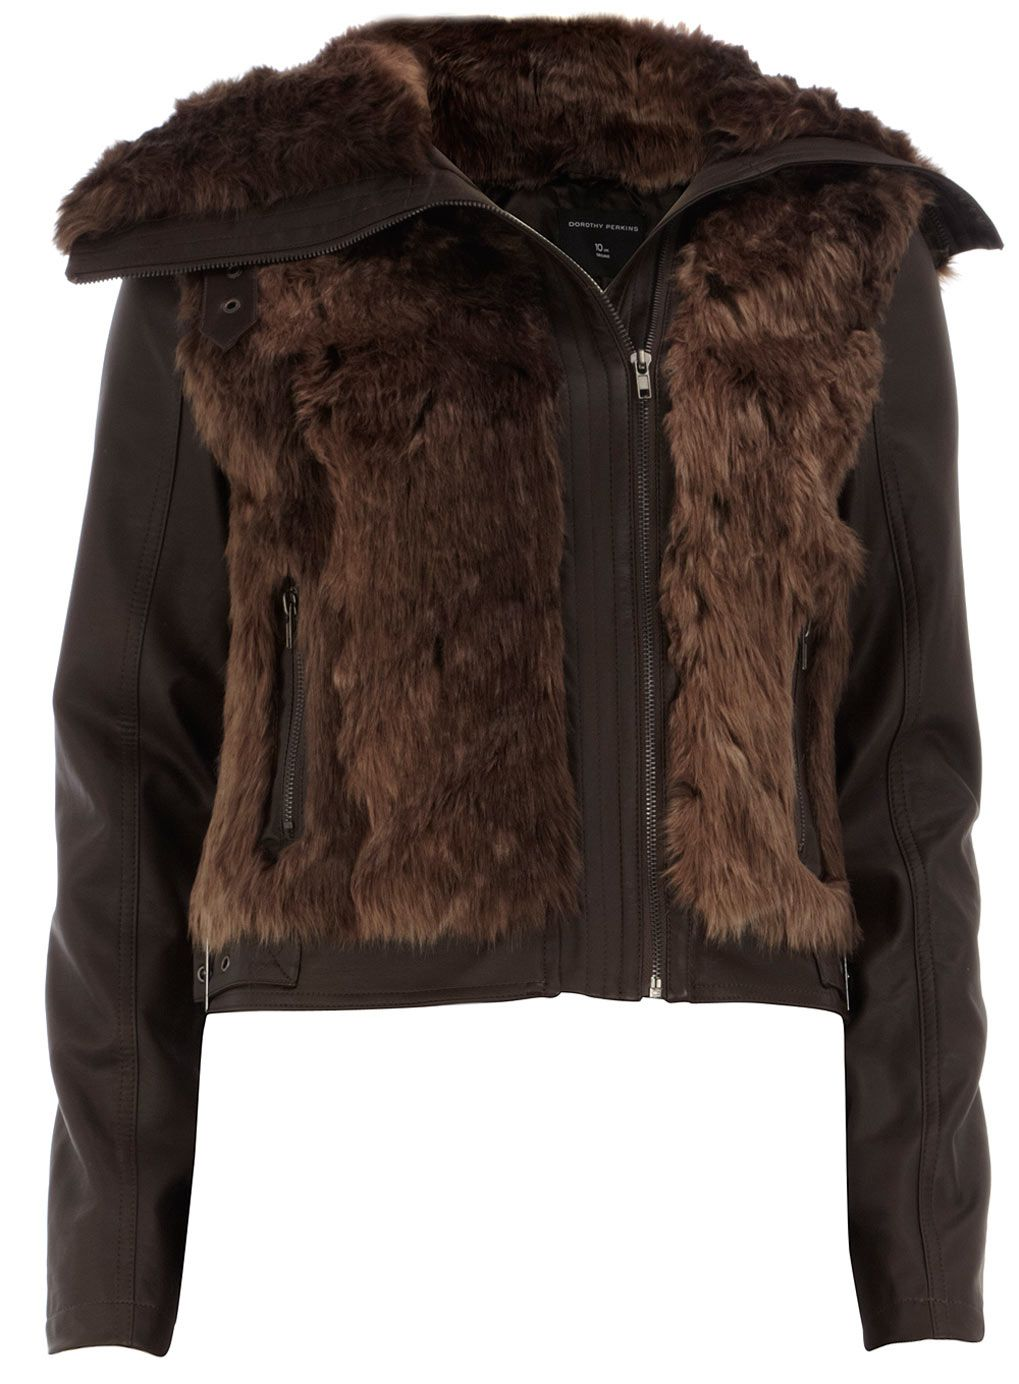 Brown fur body biker